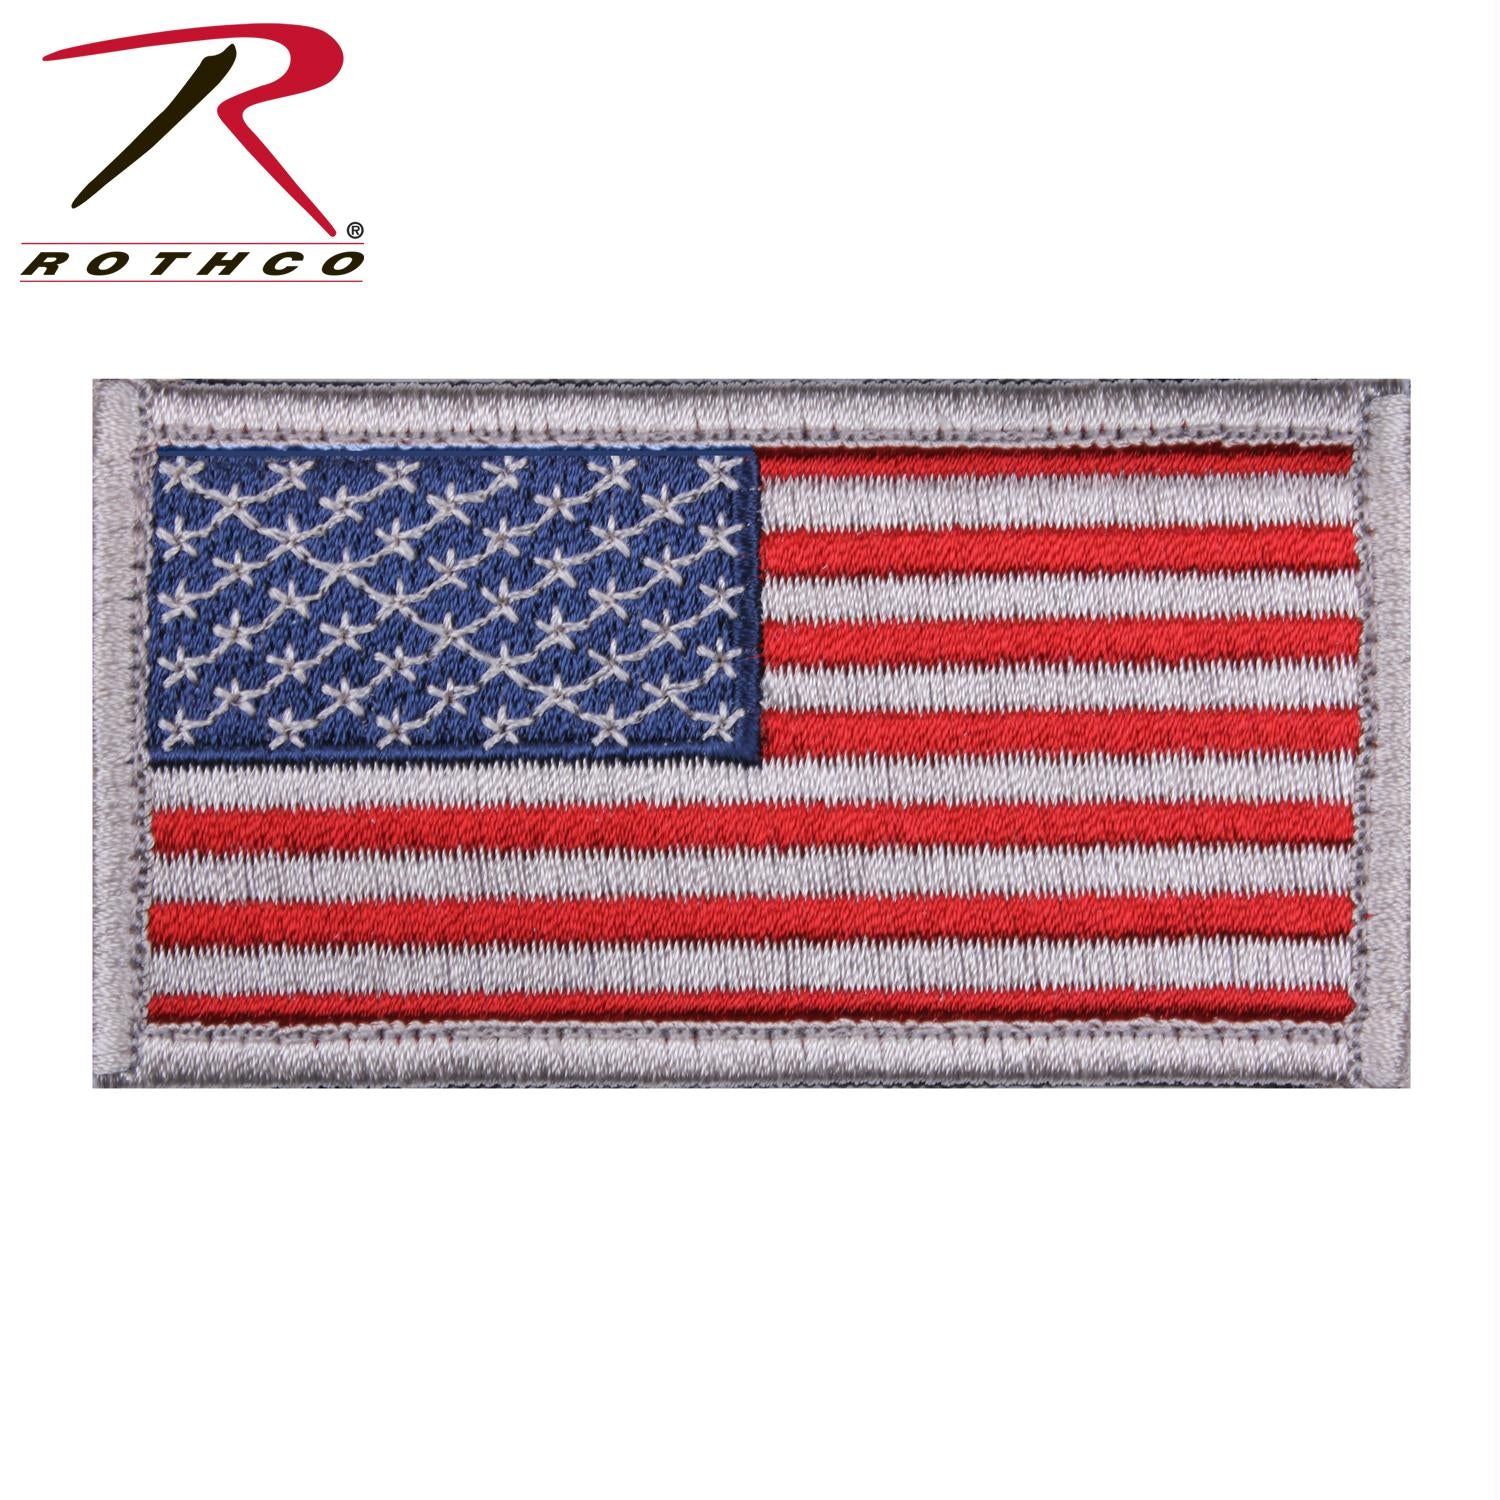 Rothco American Flag Patch - Red White Blue with White Border / Normal / Bulk Packaging